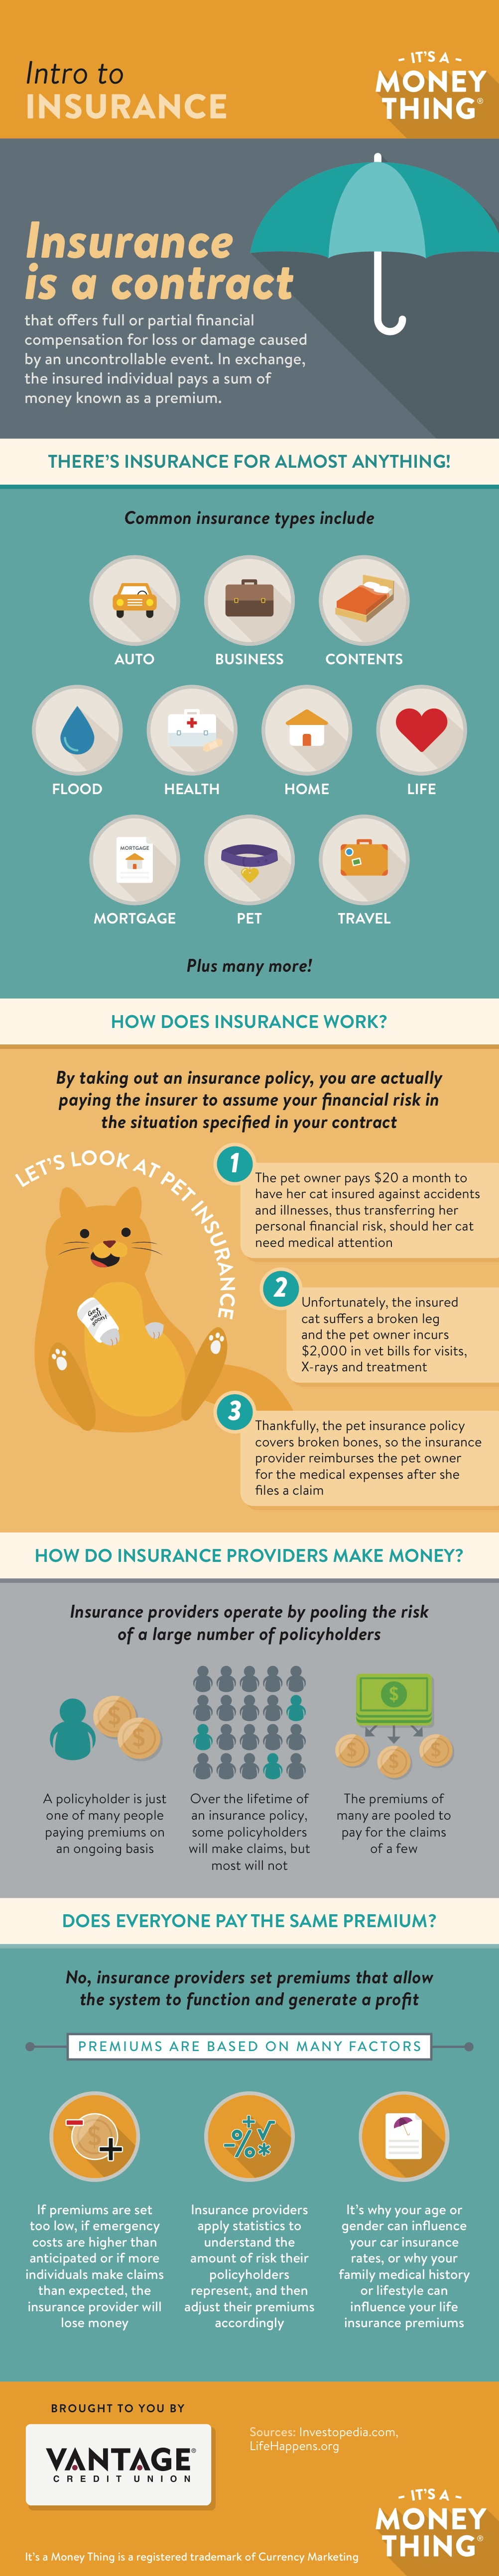 intro-to-insurance-infographic